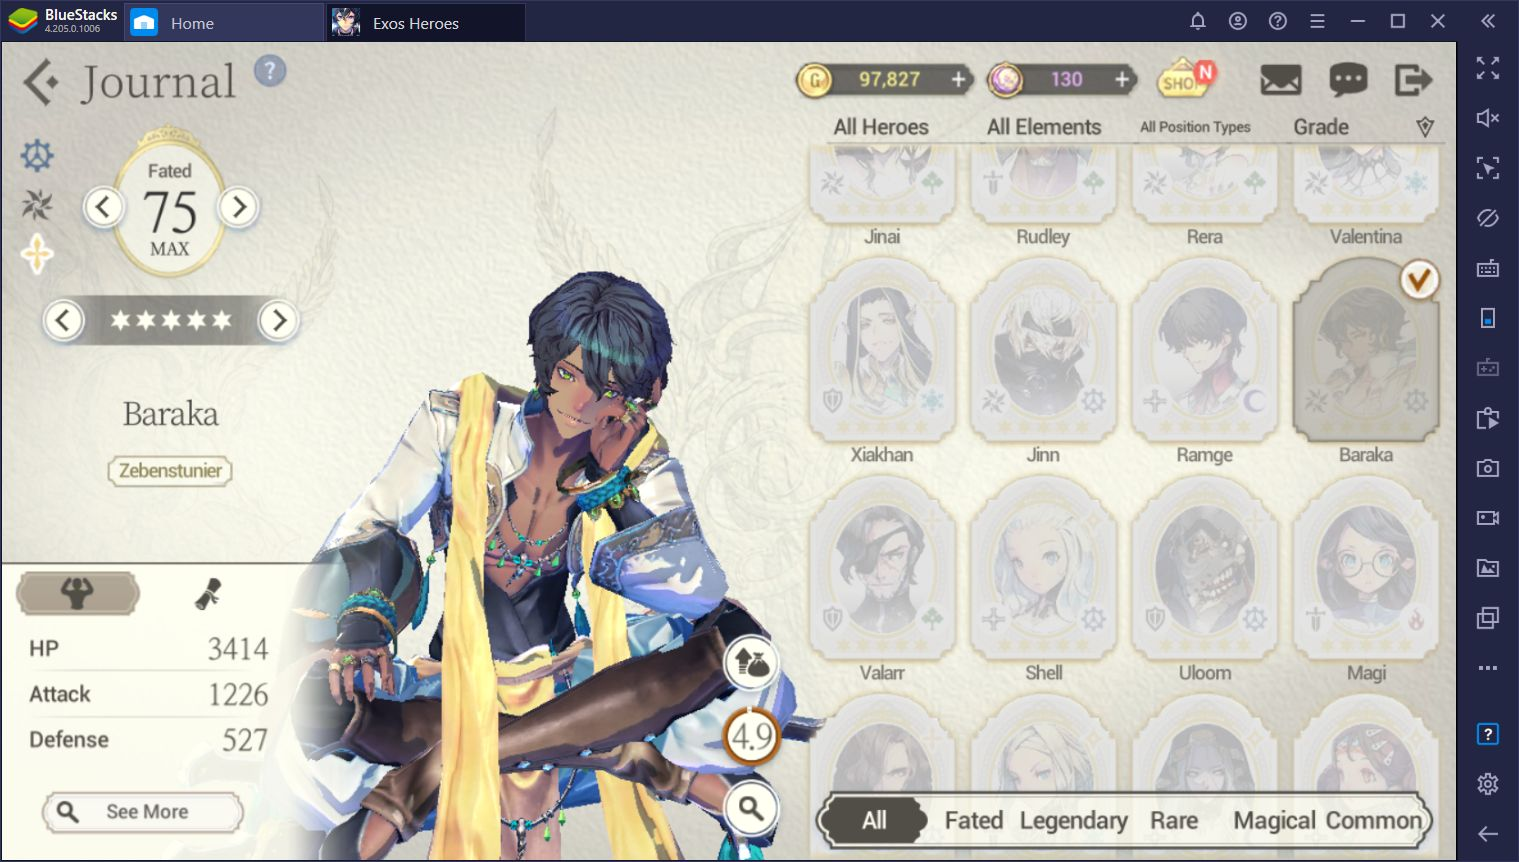 Rerolling in Exos Heroes - Summoning the Best Characters In the Game